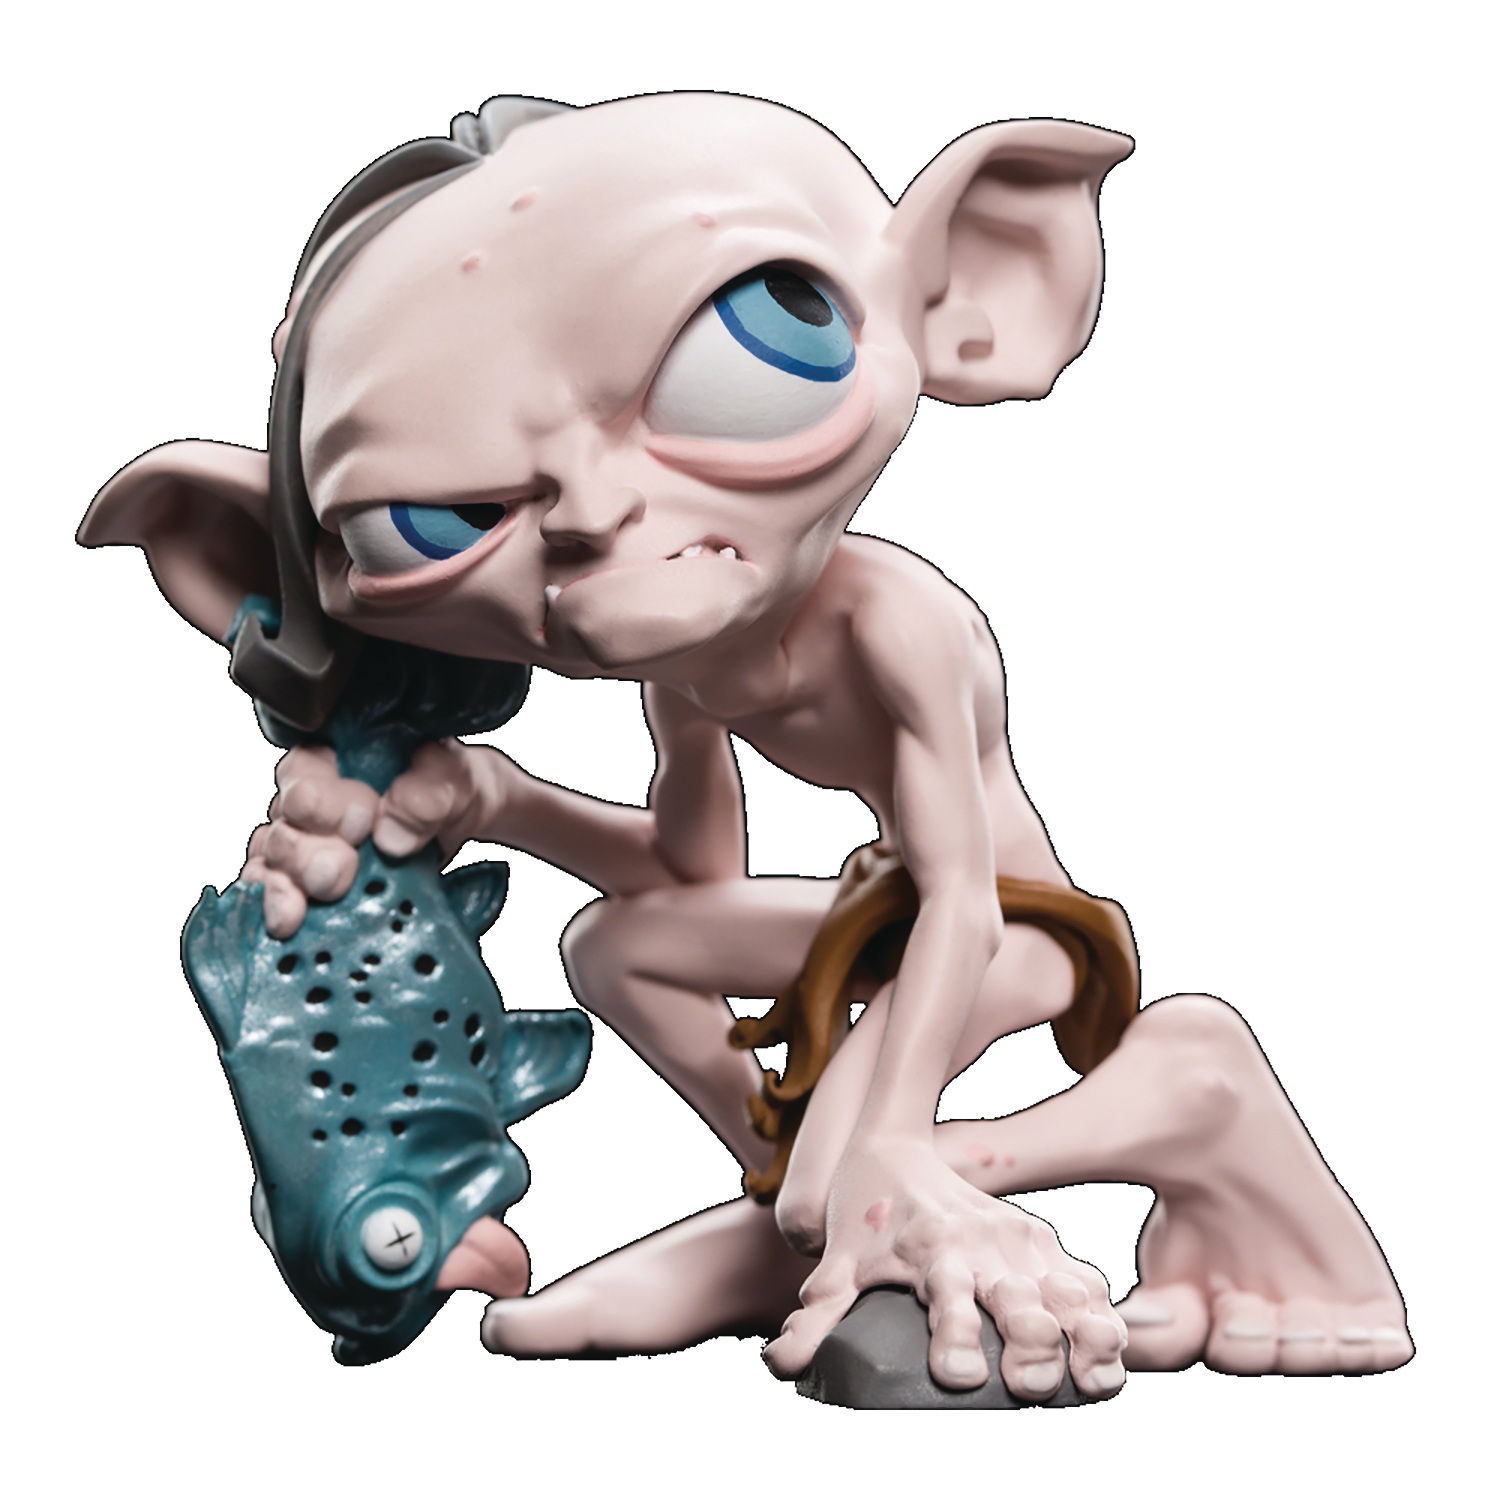 MINI EPICS LOTR GOLLUM VINYL FIG